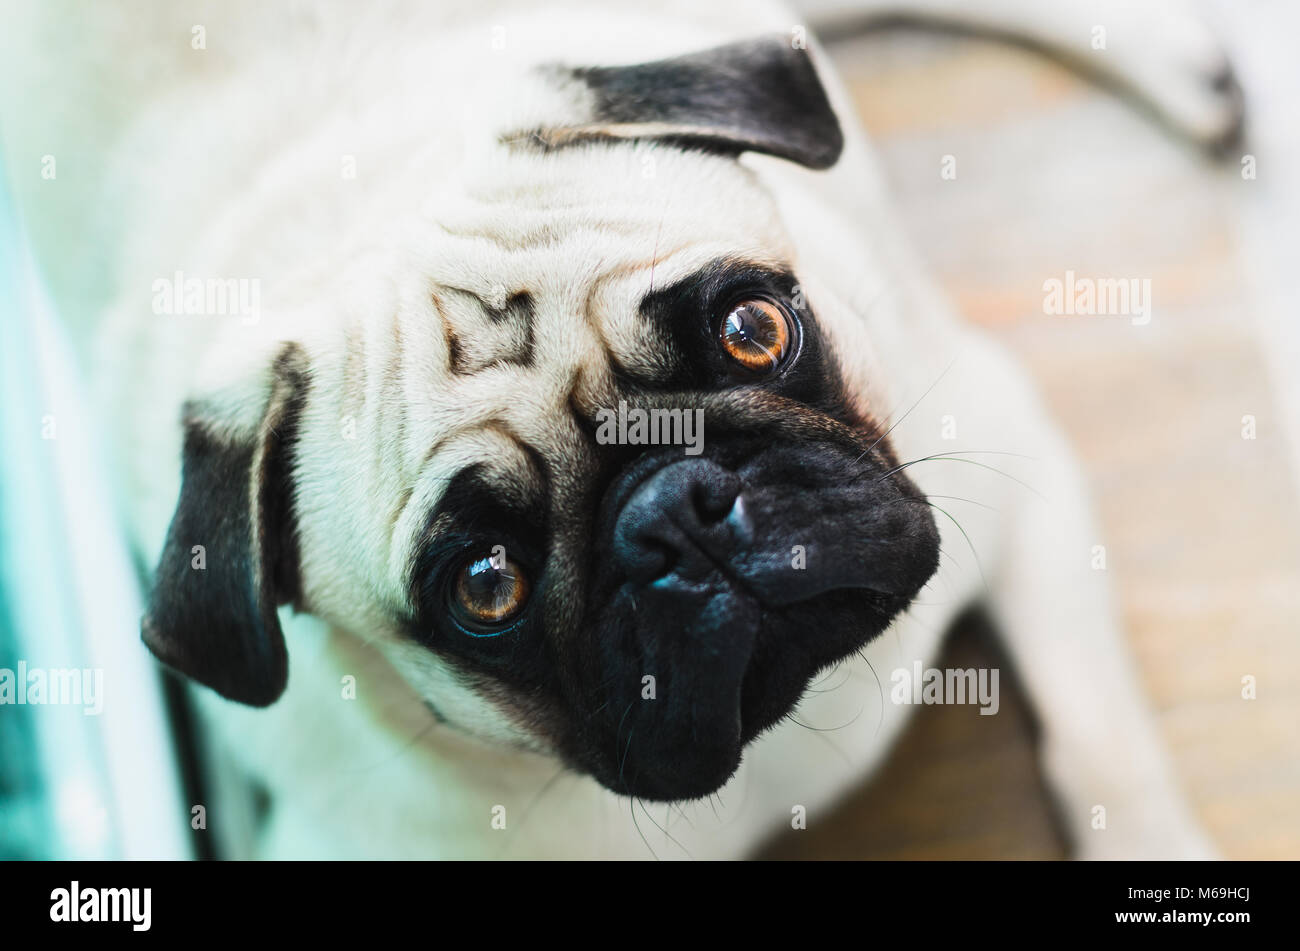 Pug looking up with the head tilted to the side. Expressive dog, pity face. - Stock Image